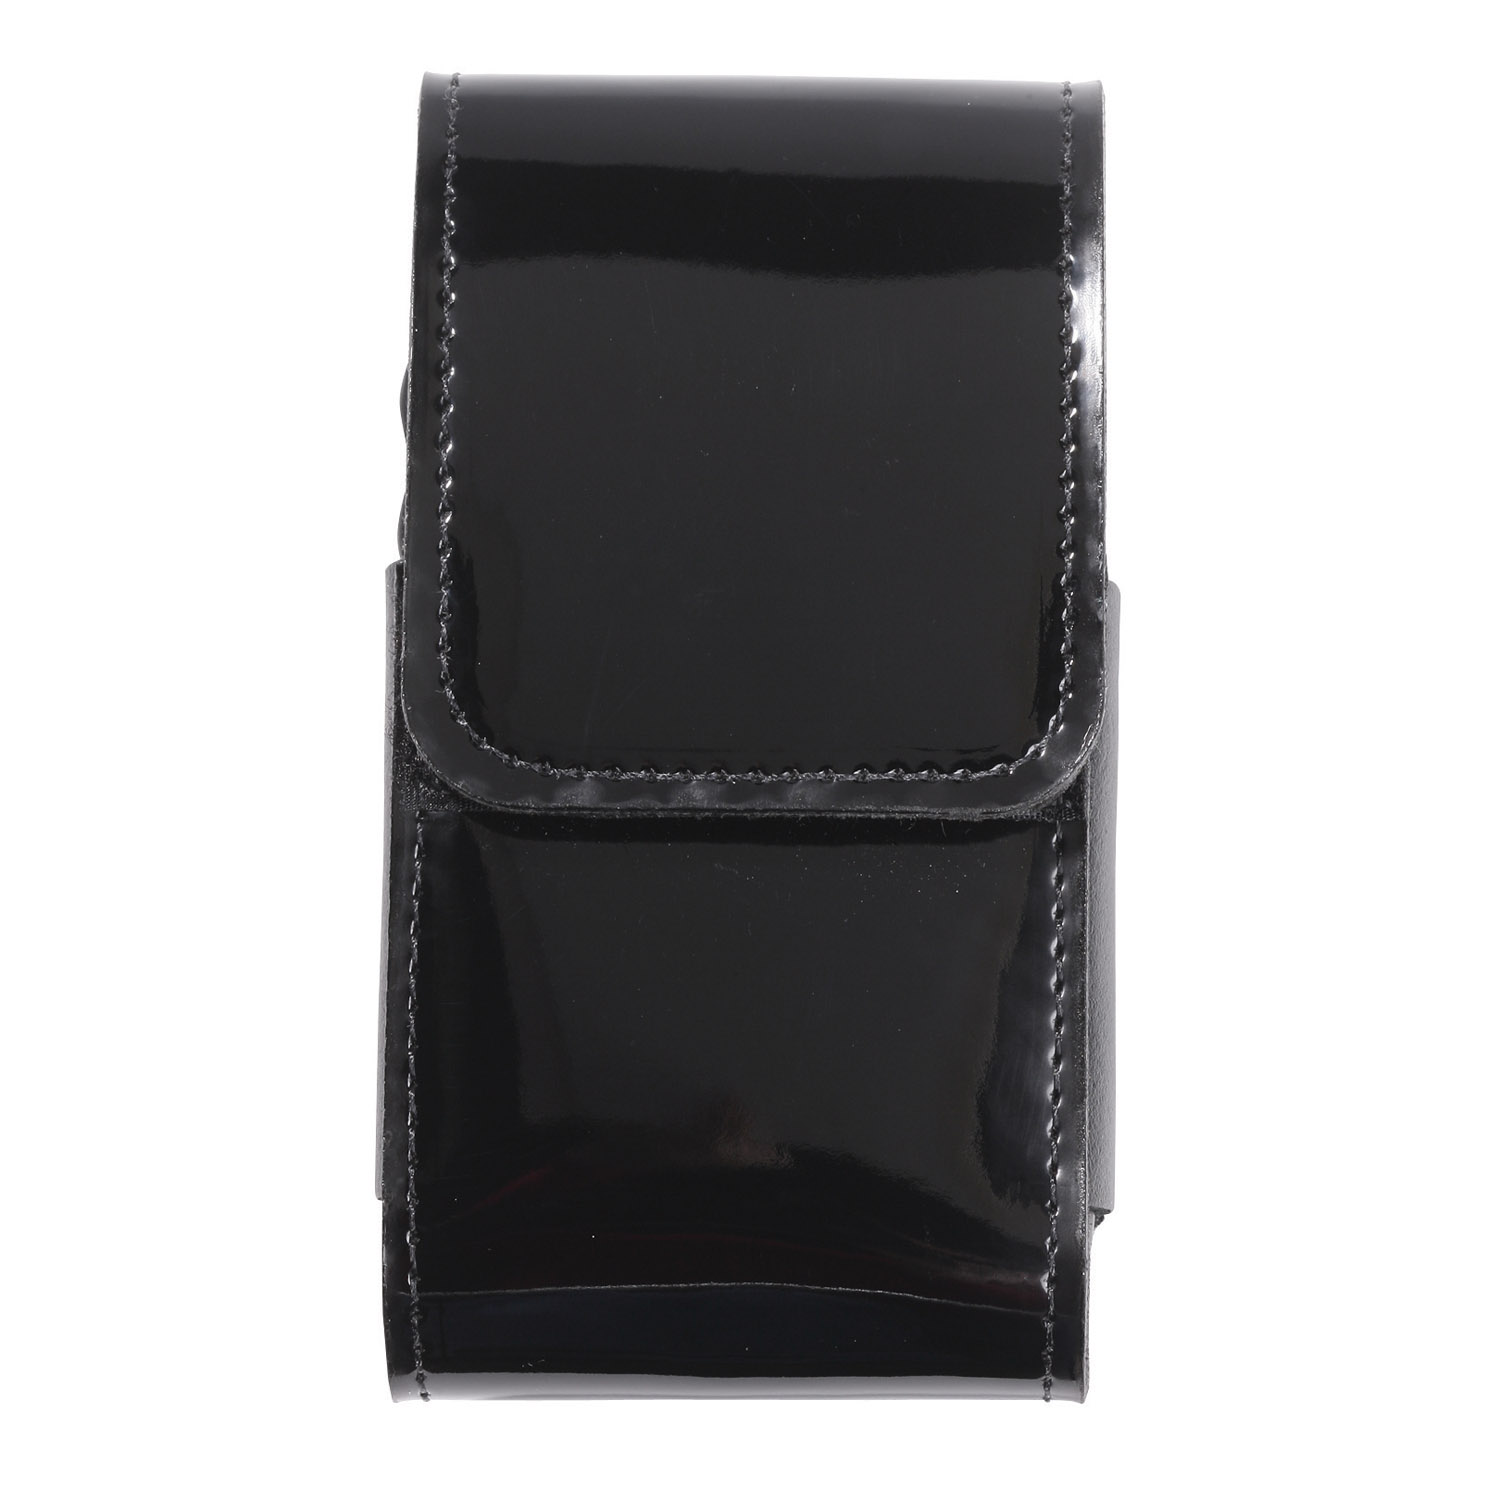 Boston Leather Cell Phone Case for Droid X and iPhone 5